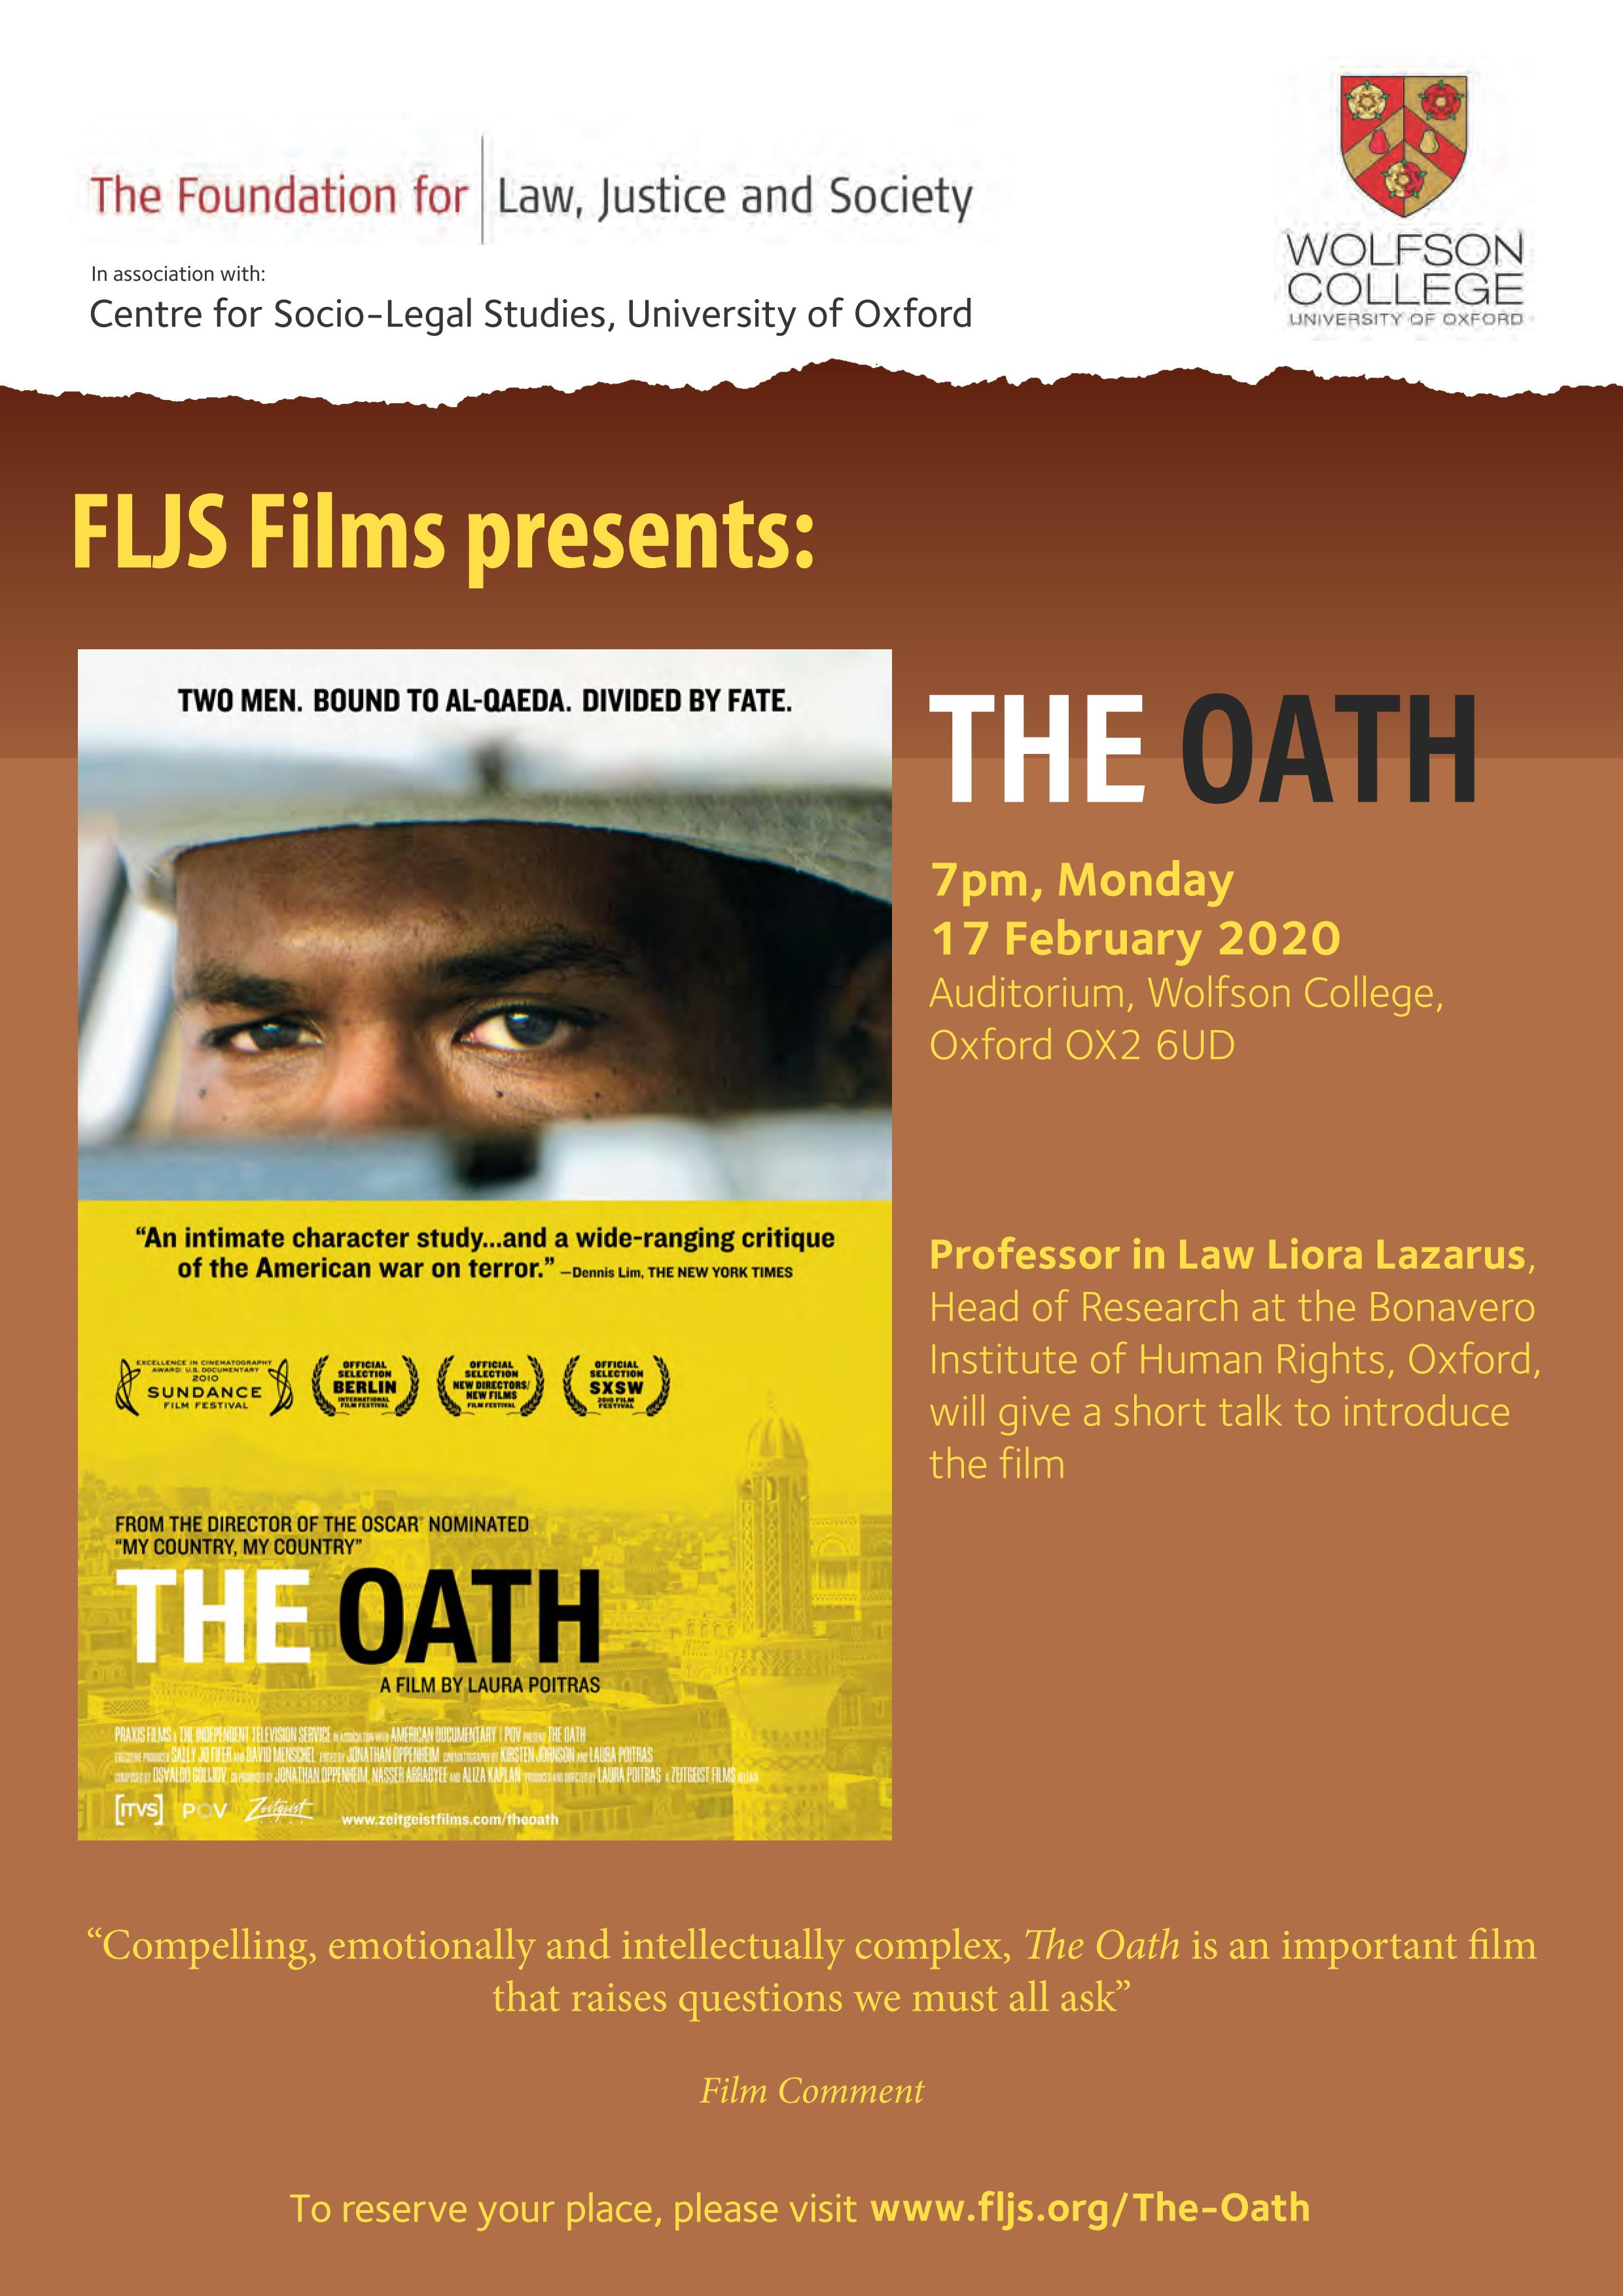 FLJS Films: The Oath, with a talk by Prof Liora Lazarus on human rights post 9/11